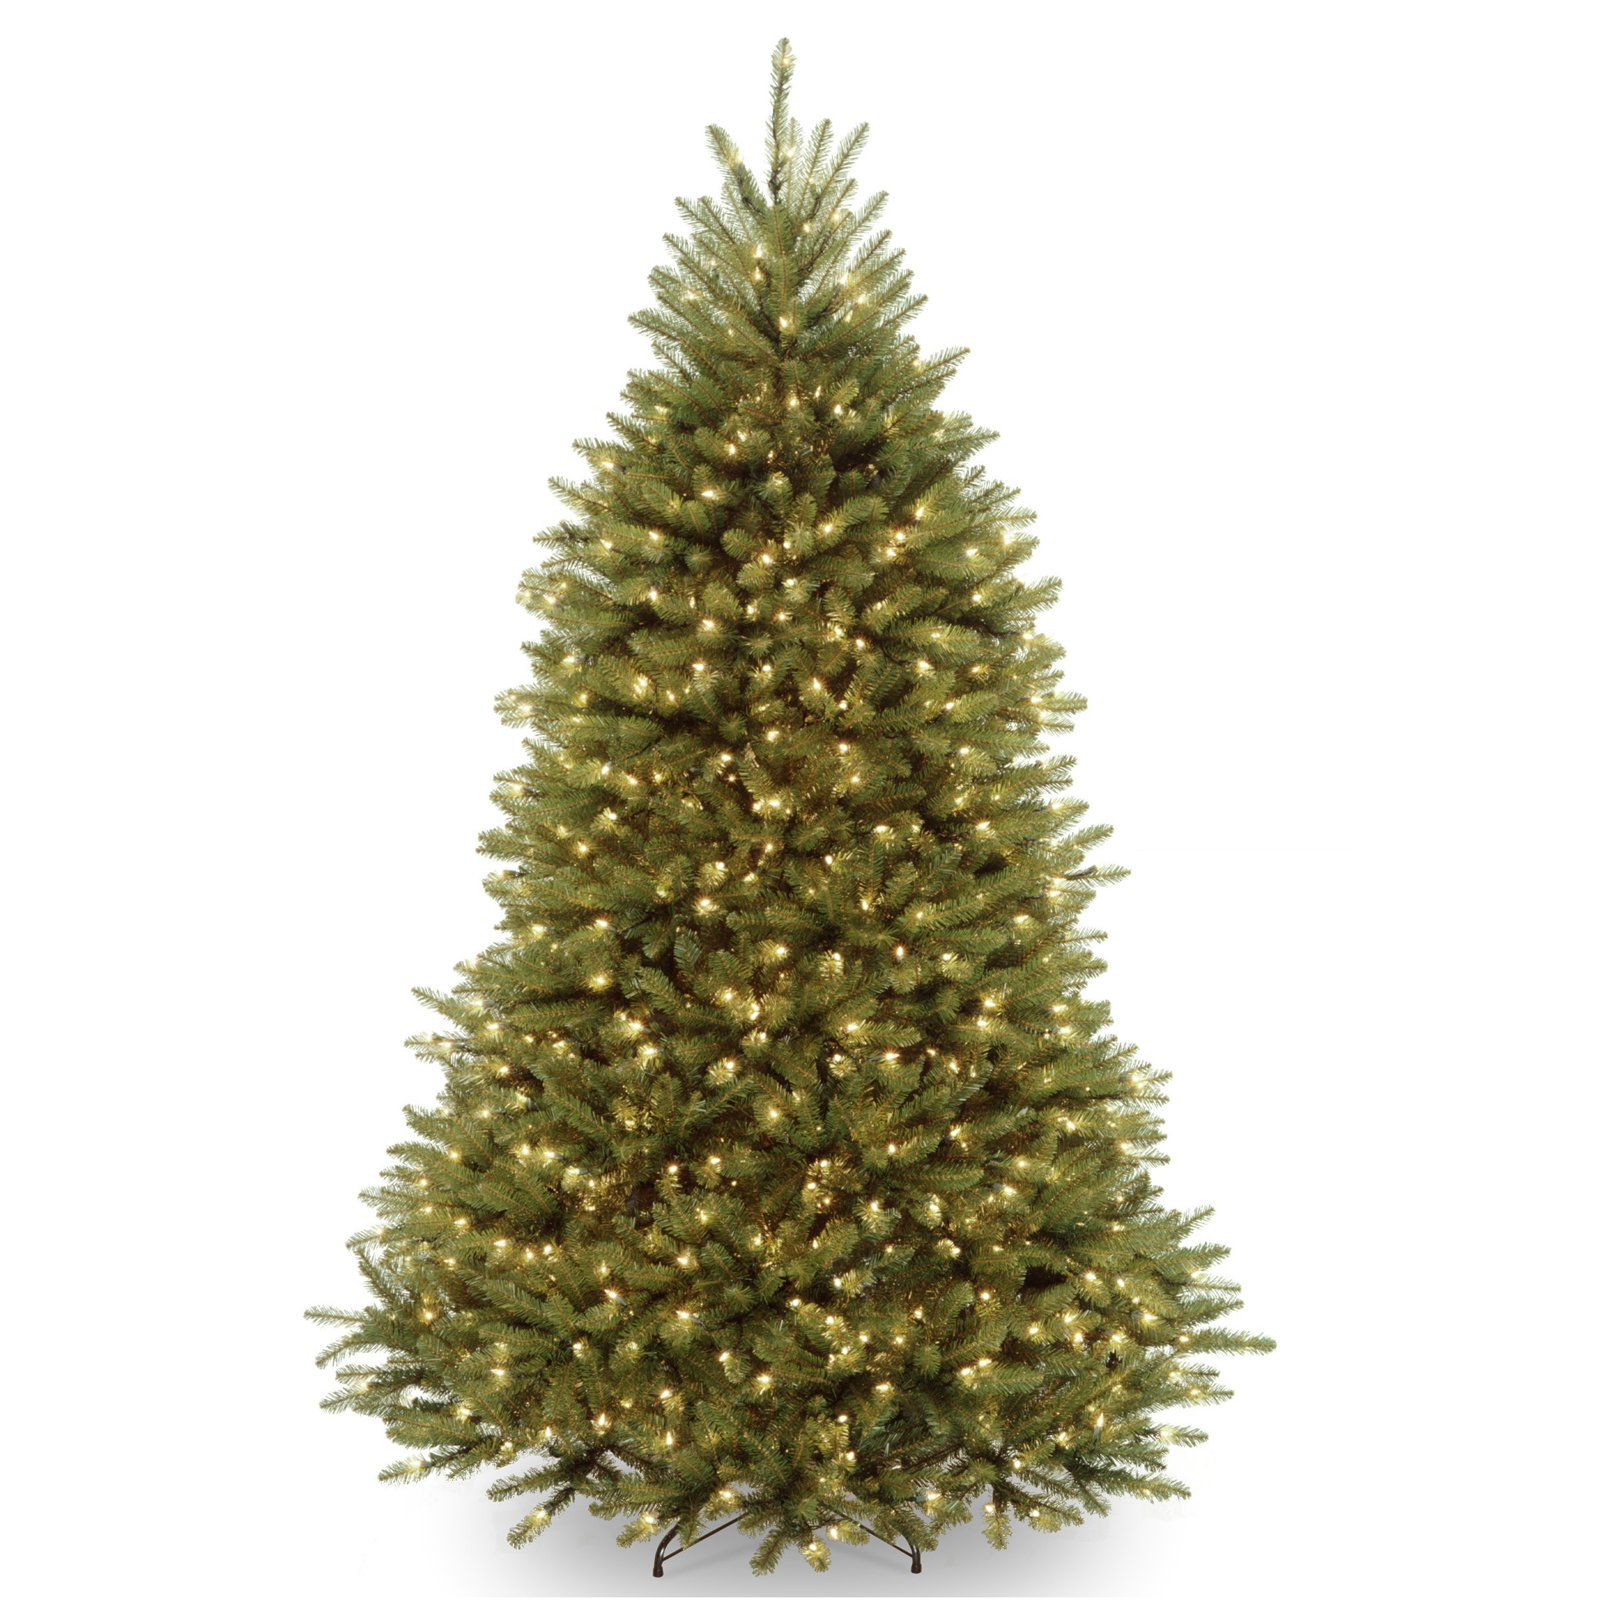 National Tree 7.5' Dunhill Fir Hinged Tree with 700 Dual-Color LED Lights and PowerConnect System, 9 Functions